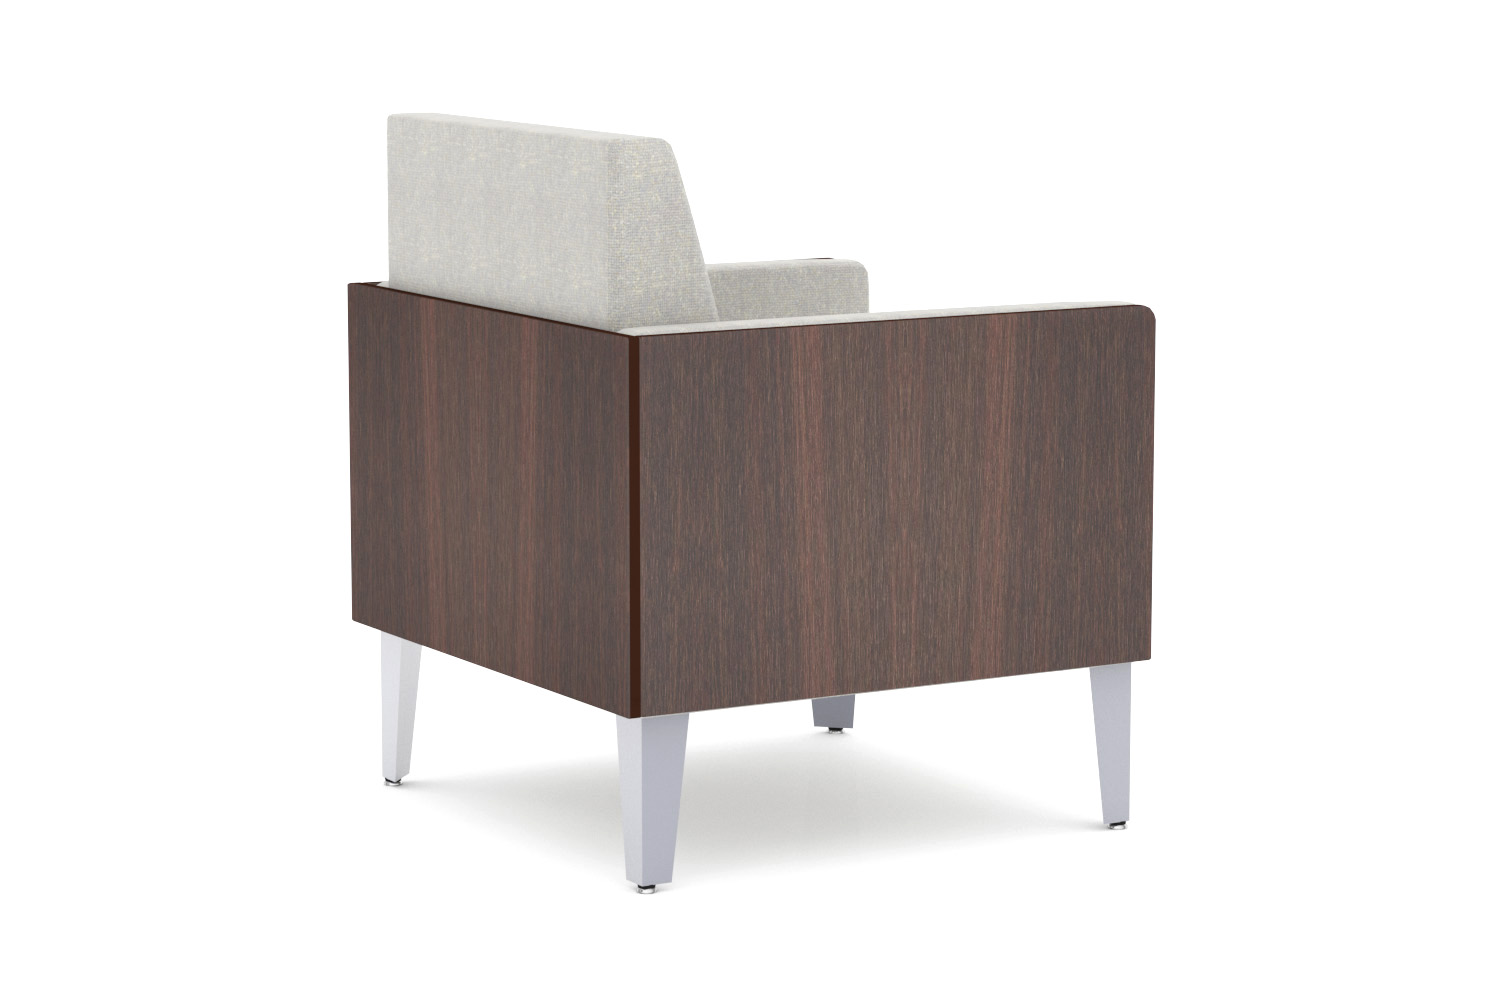 Malibu, Lounge, Surround Panel, Metal Legs